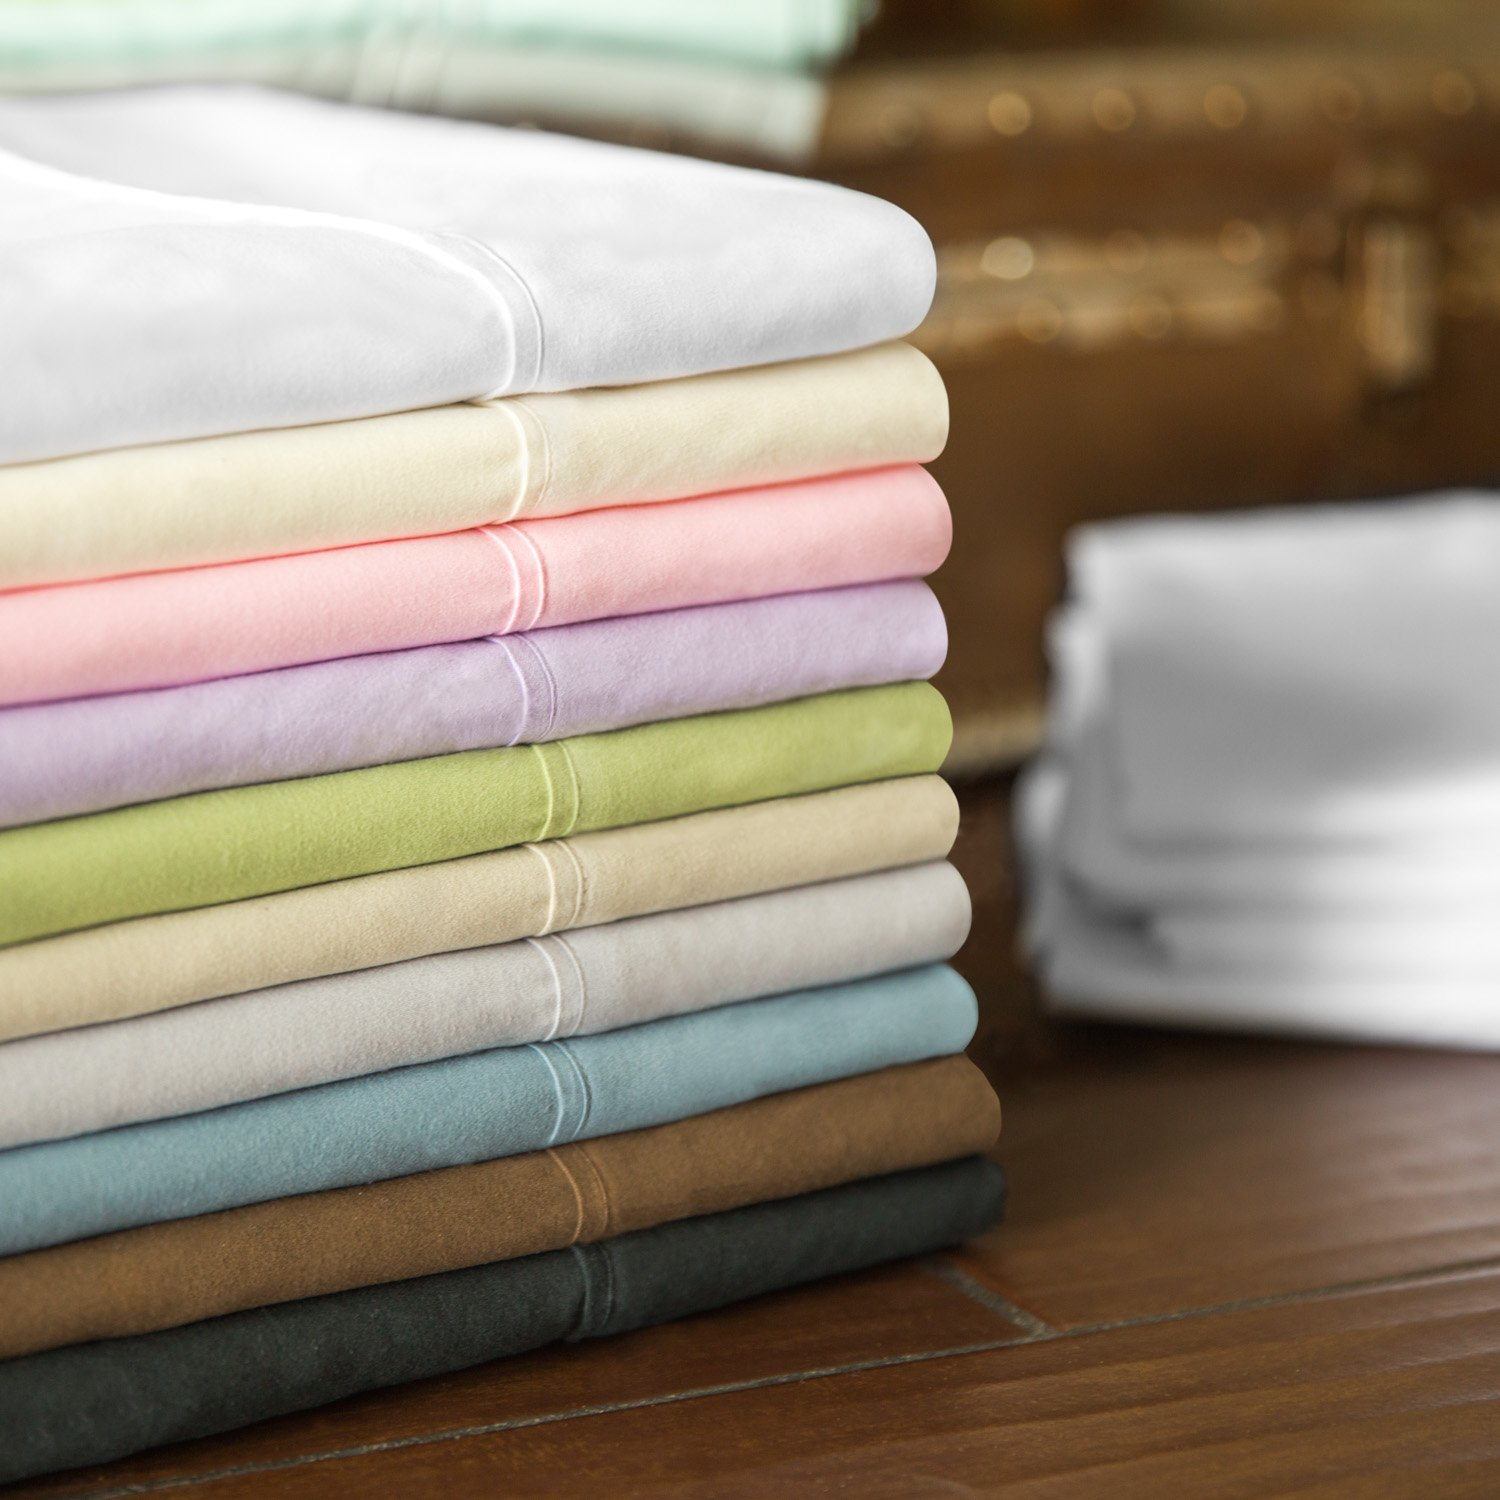 MALOUF Double Brushed Microfiber Super Soft Luxury Bed Sheet Set - Wrinkle Resistant - RV/Short Queen Size - Driftwood by MALOUF (Image #4)